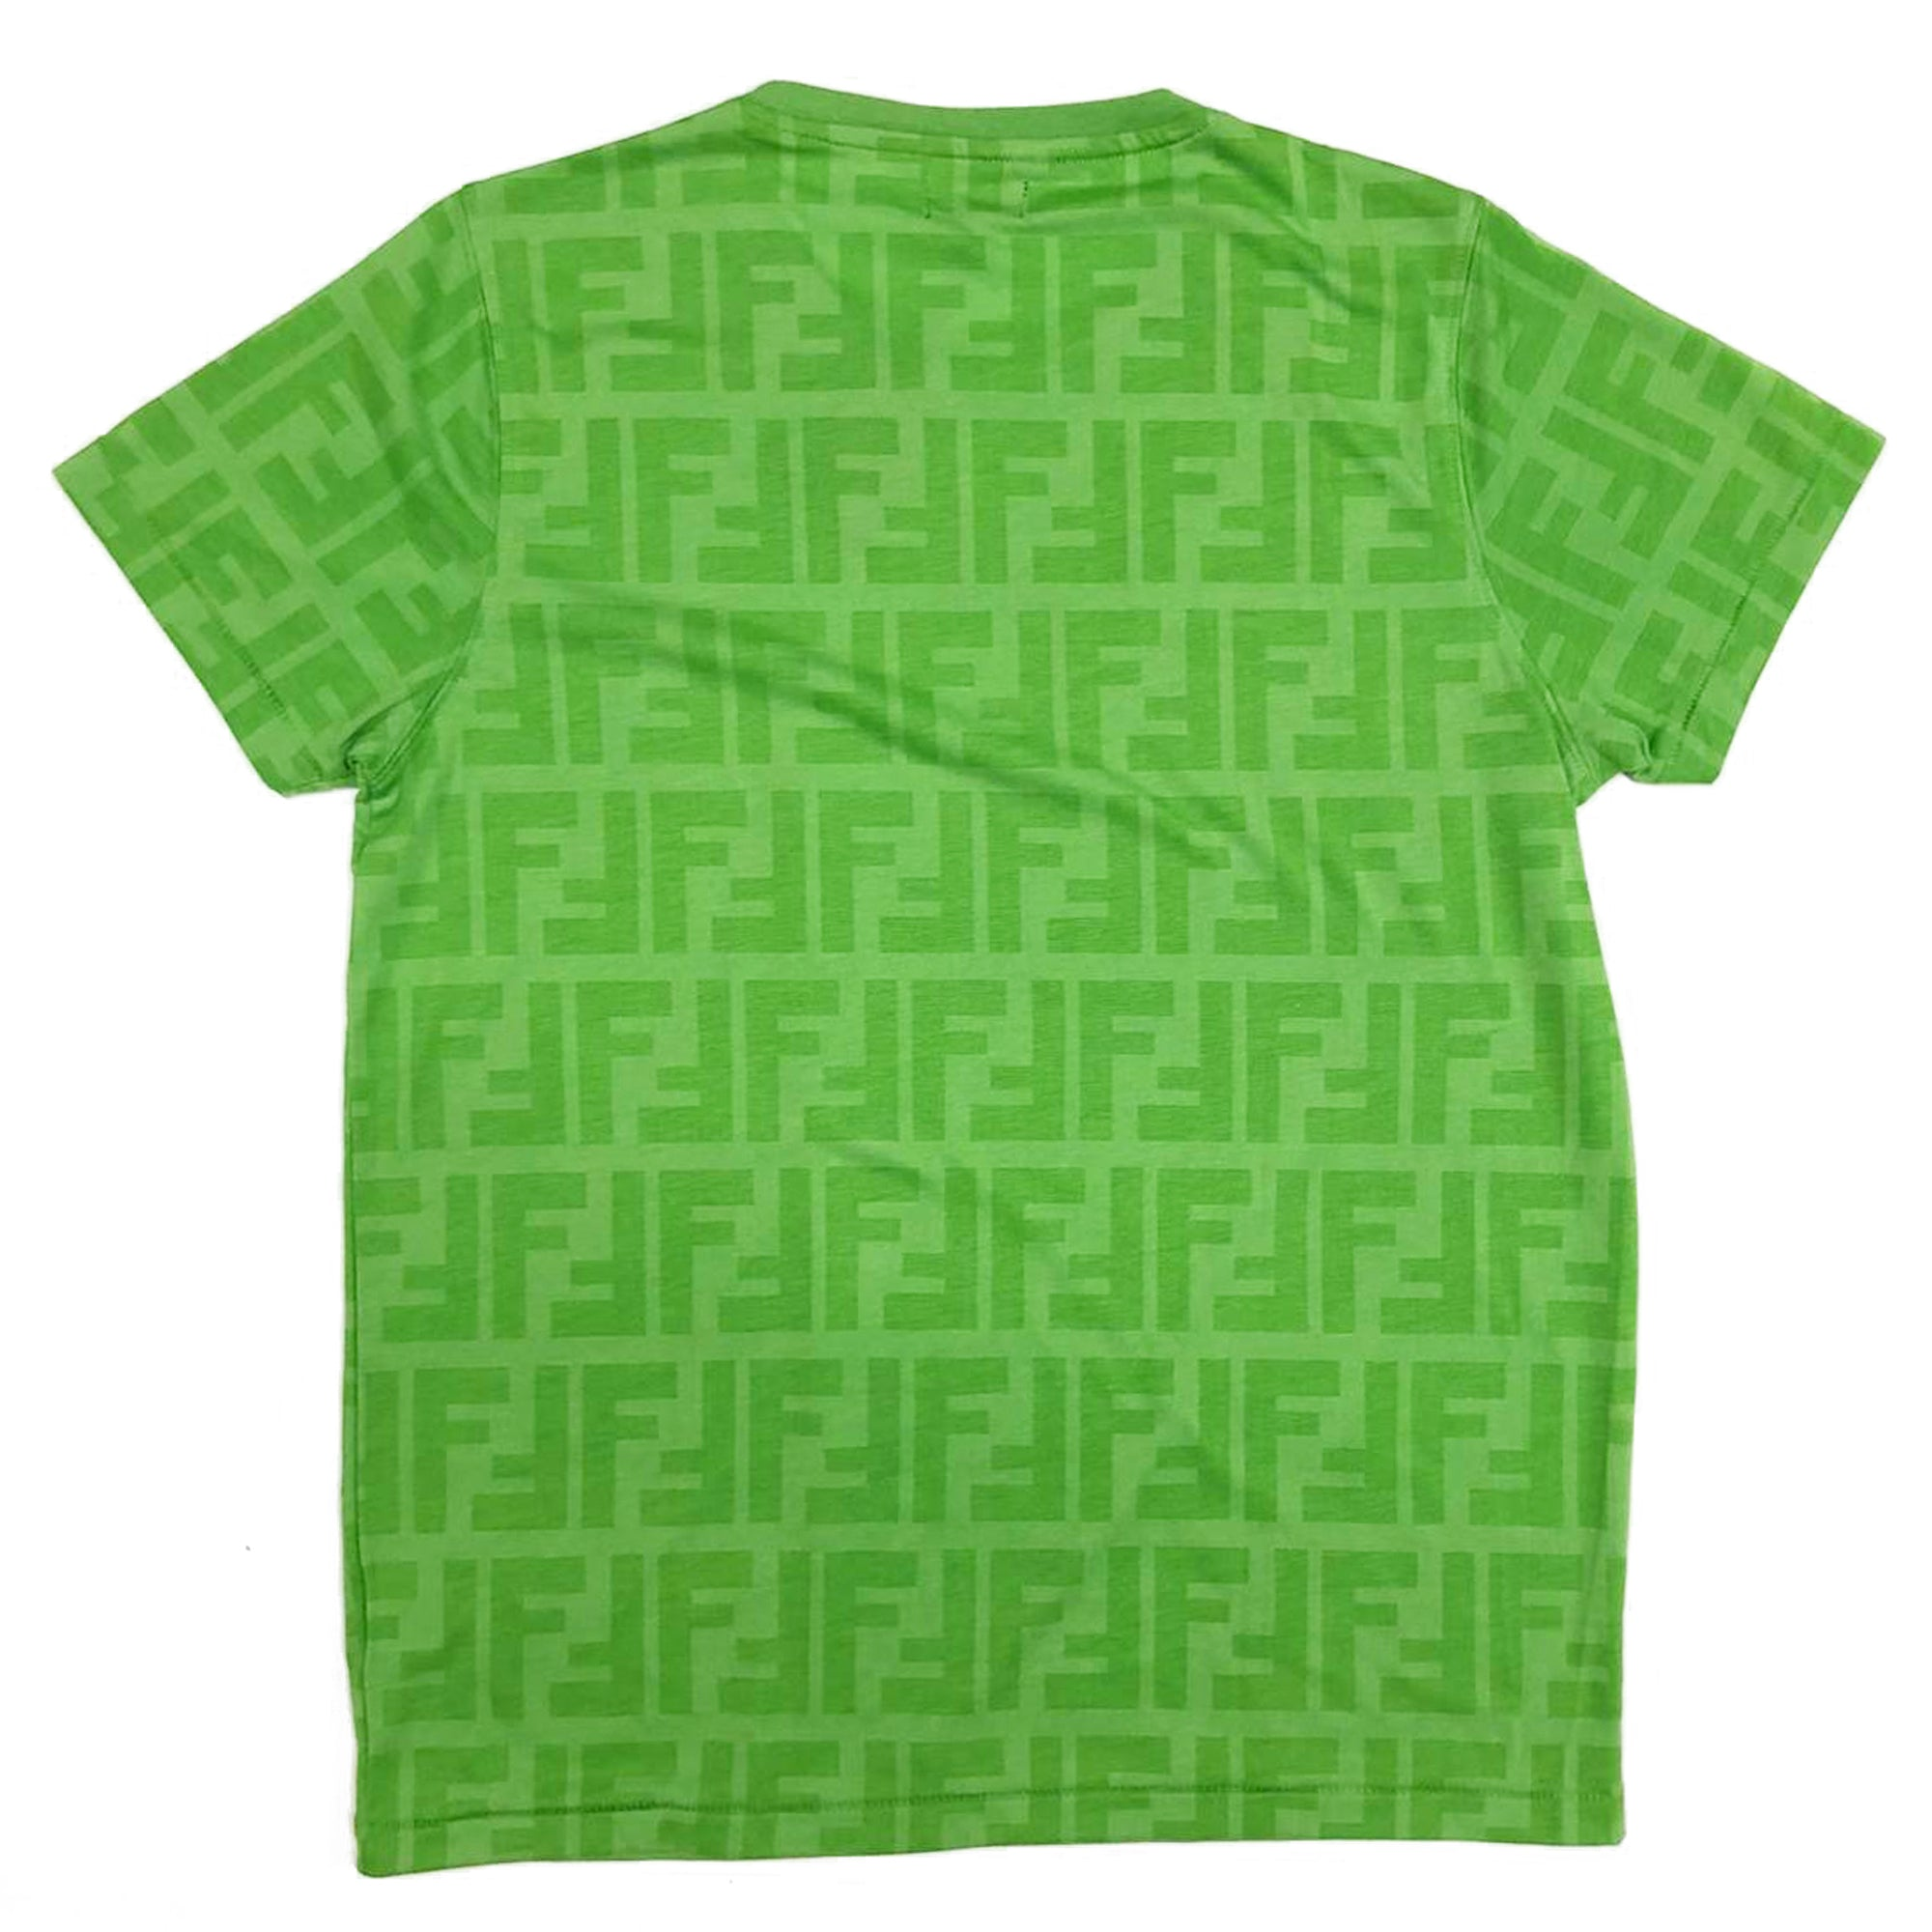 Fendi Zucca T-Shirt (Green) UK 10